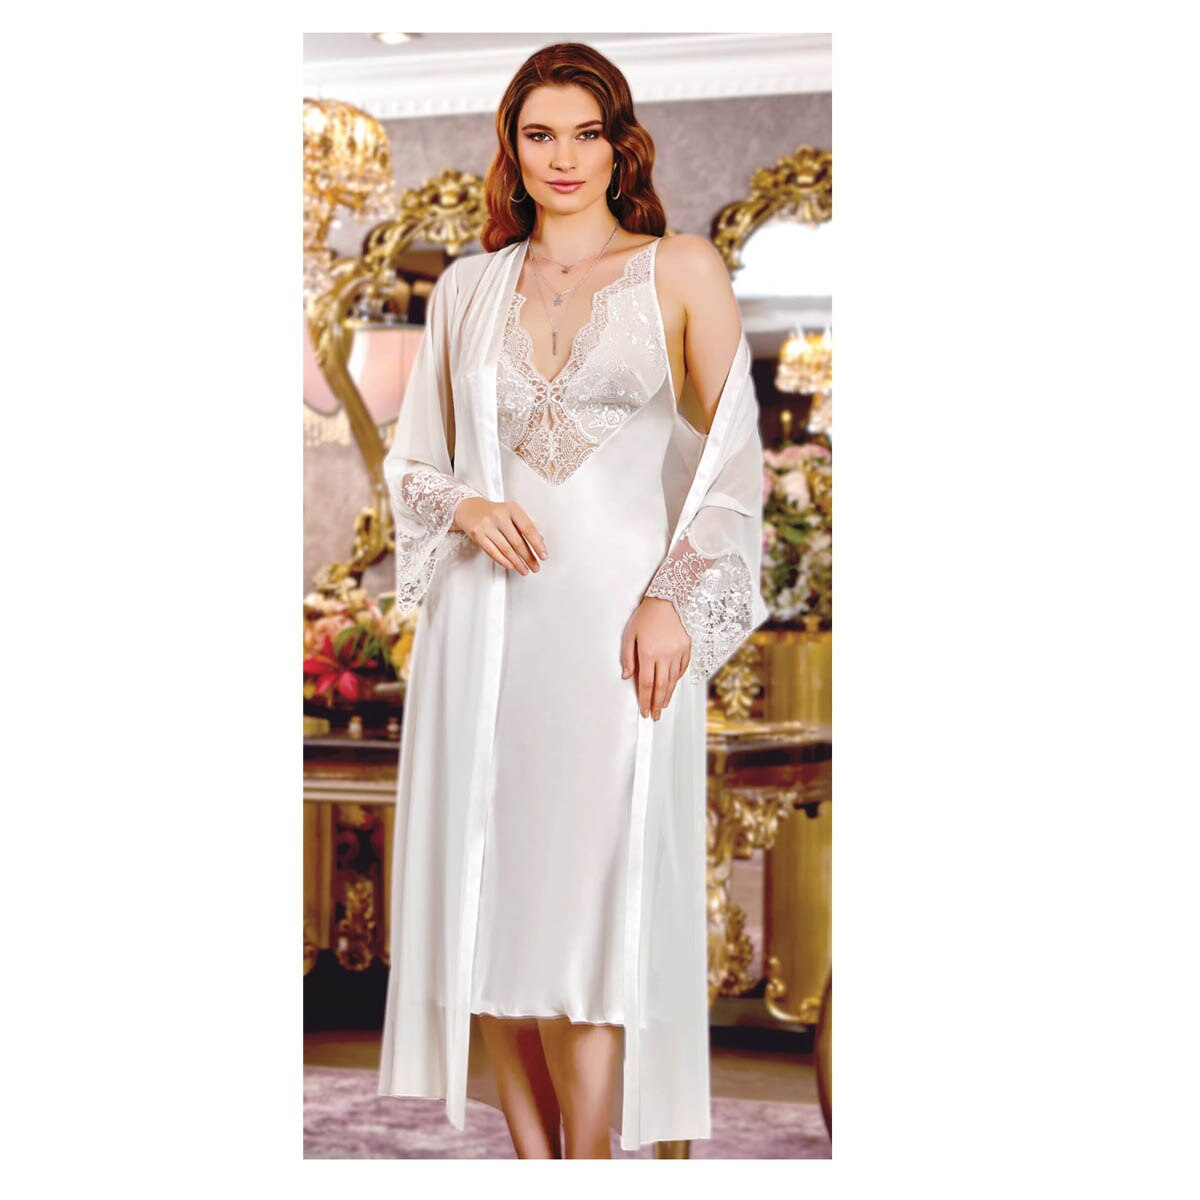 Women's Nightgown Dressing Gown Pajamas Set White Lace Long Sexy Underwear 6 Pieces Wedding Dowry Gift Pack Can be Worn At Home